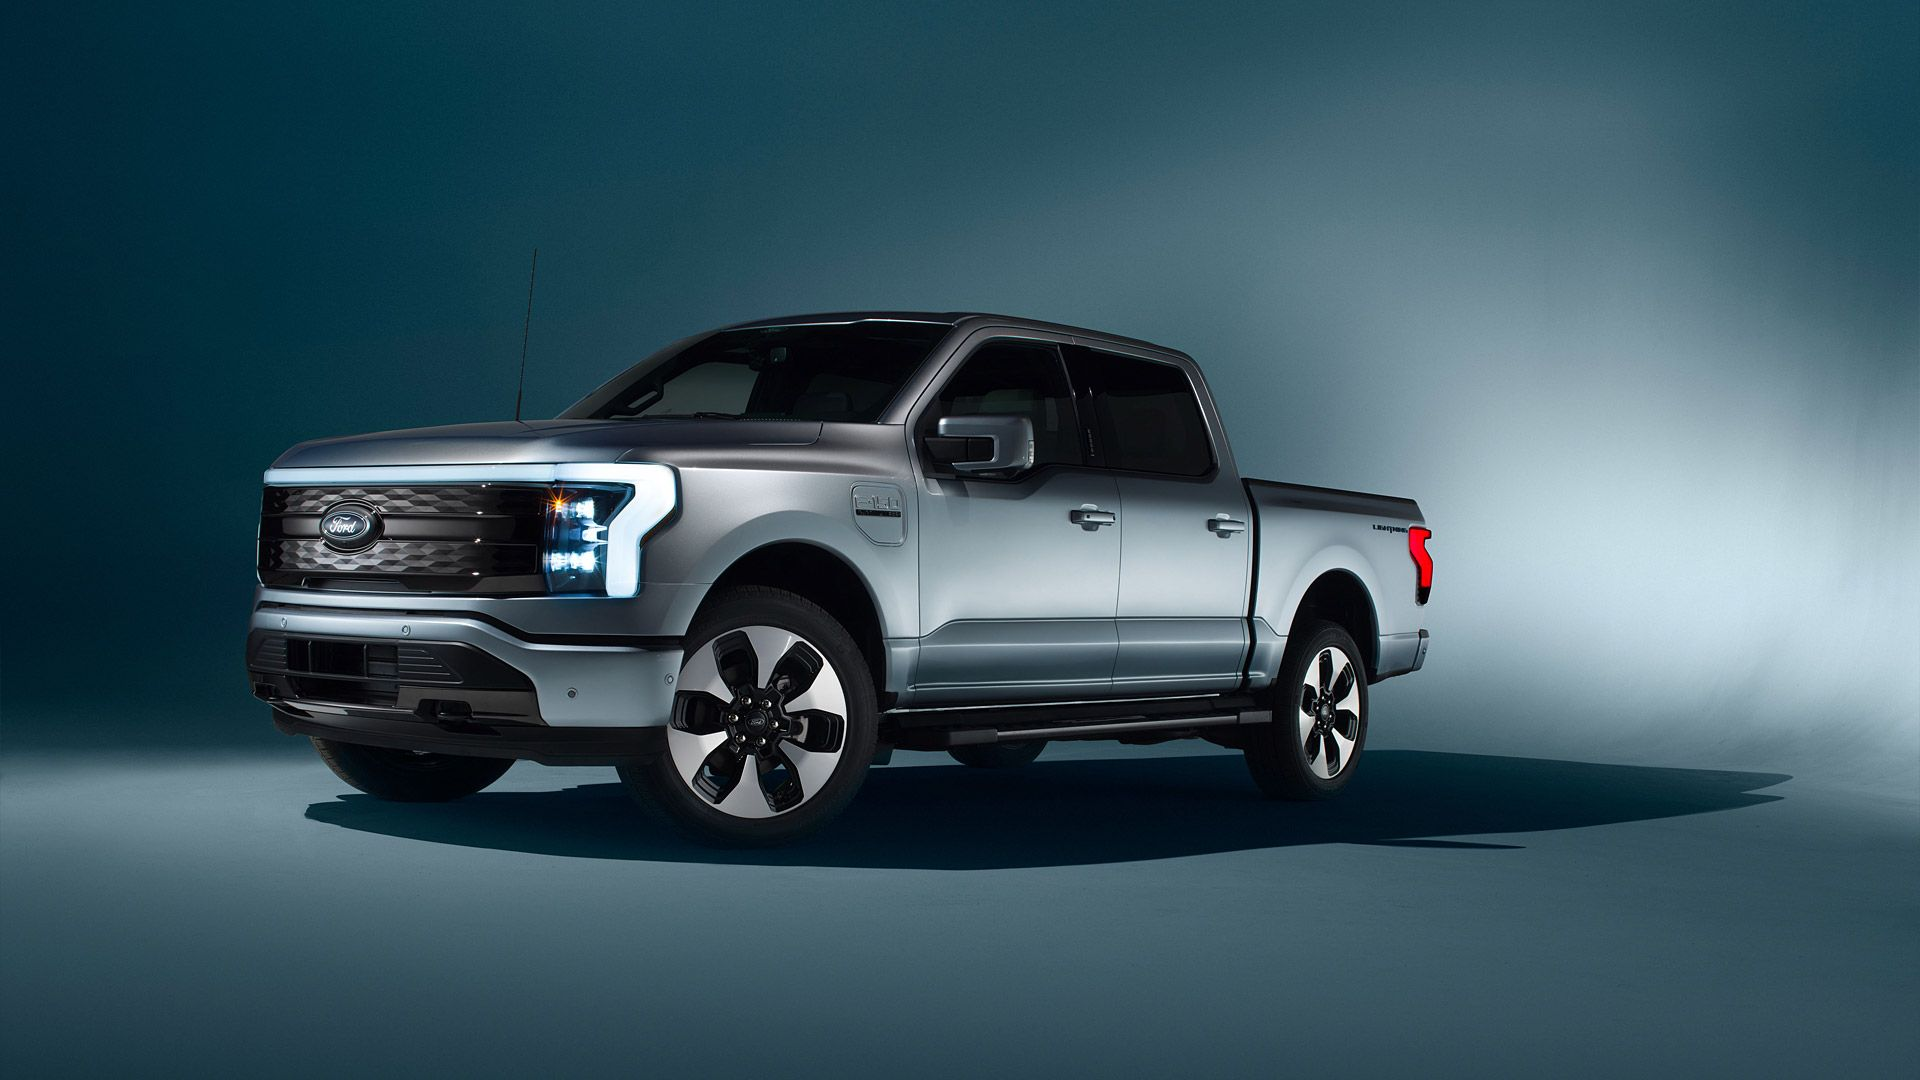 2022 Ford F 150 Lightning Wallpapers Wsupercars In 2021 Ford Ford F150 Electric Pickup Truck